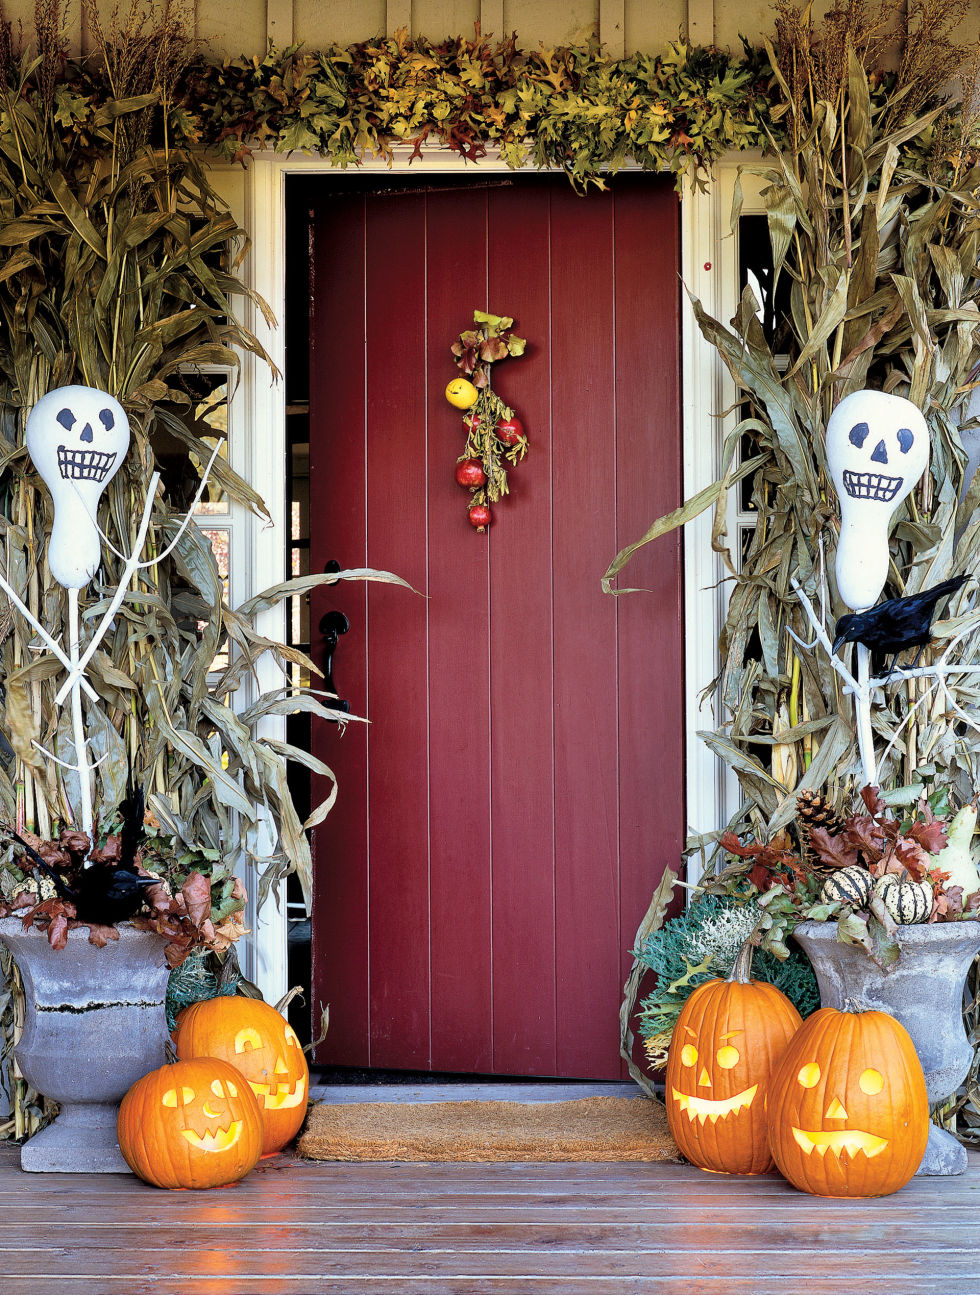 11 Awesome Outdoor Halloween Decoration Ideas - Spooky Decorations